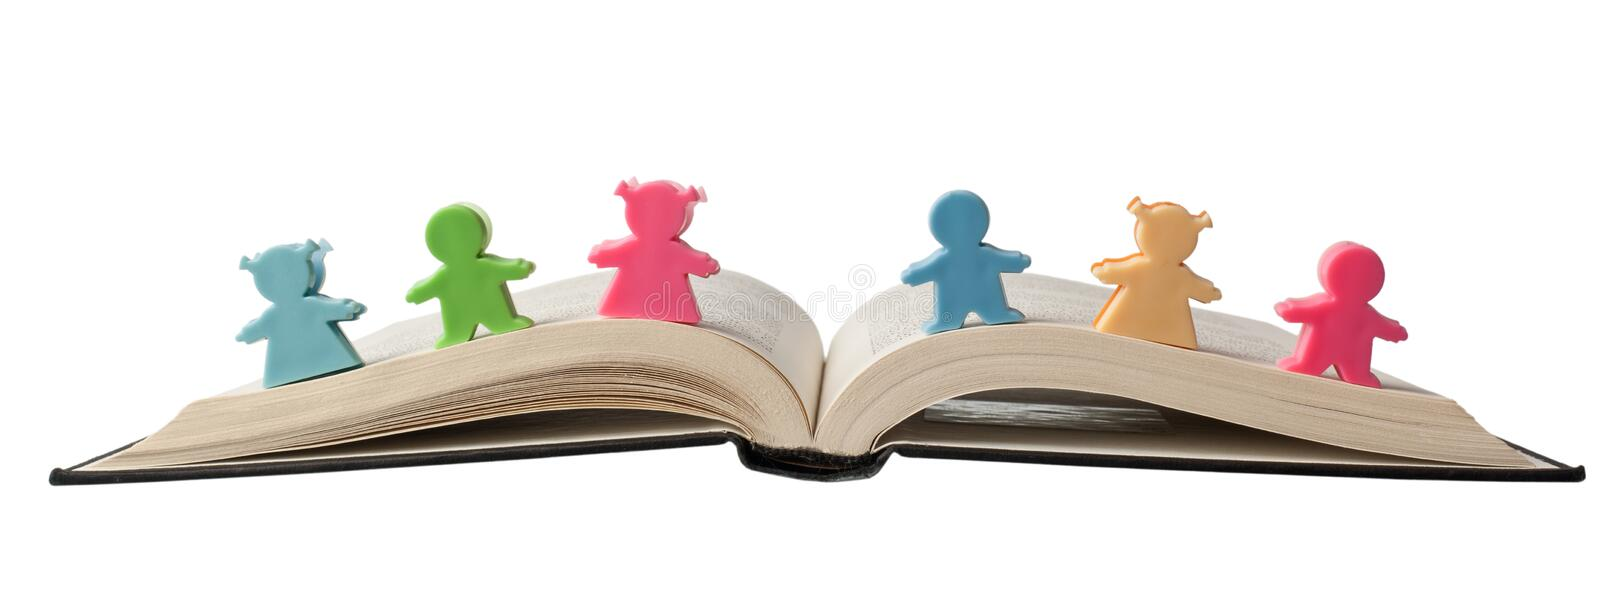 Download Figurines on open book stock photo. Image of literacy - 25590356